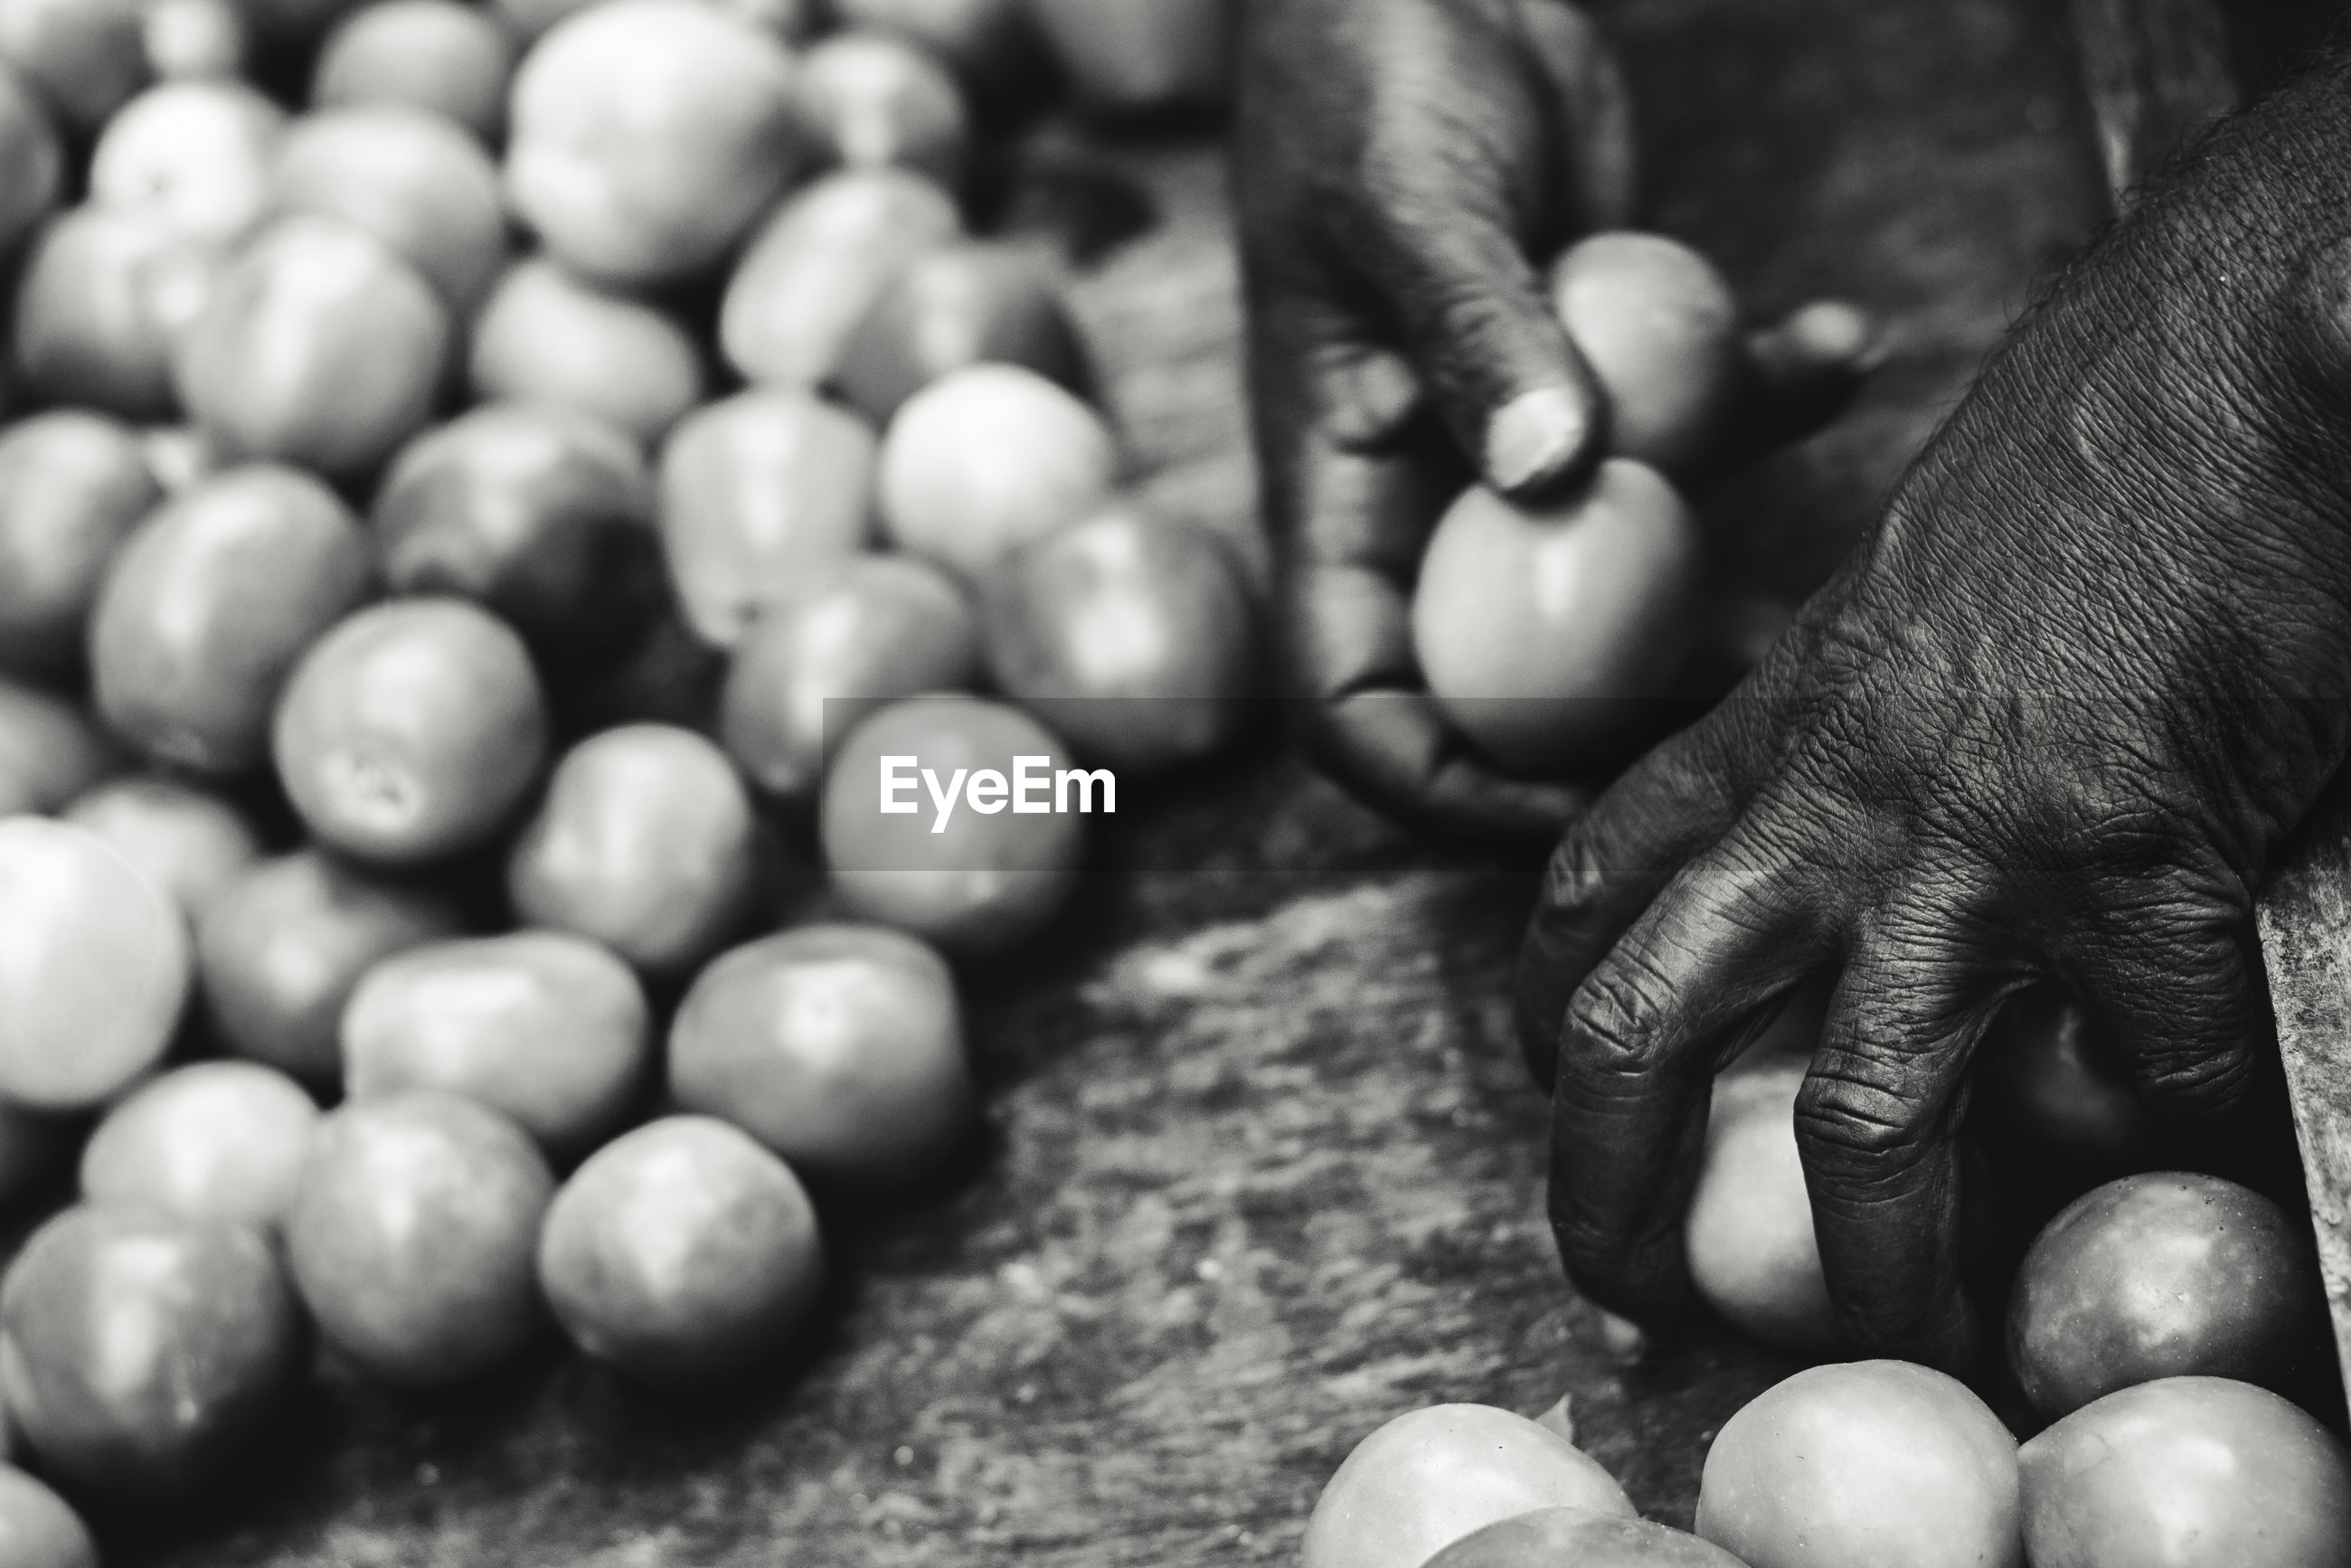 CLOSE-UP OF PERSON HOLDING EGGS IN CONTAINER